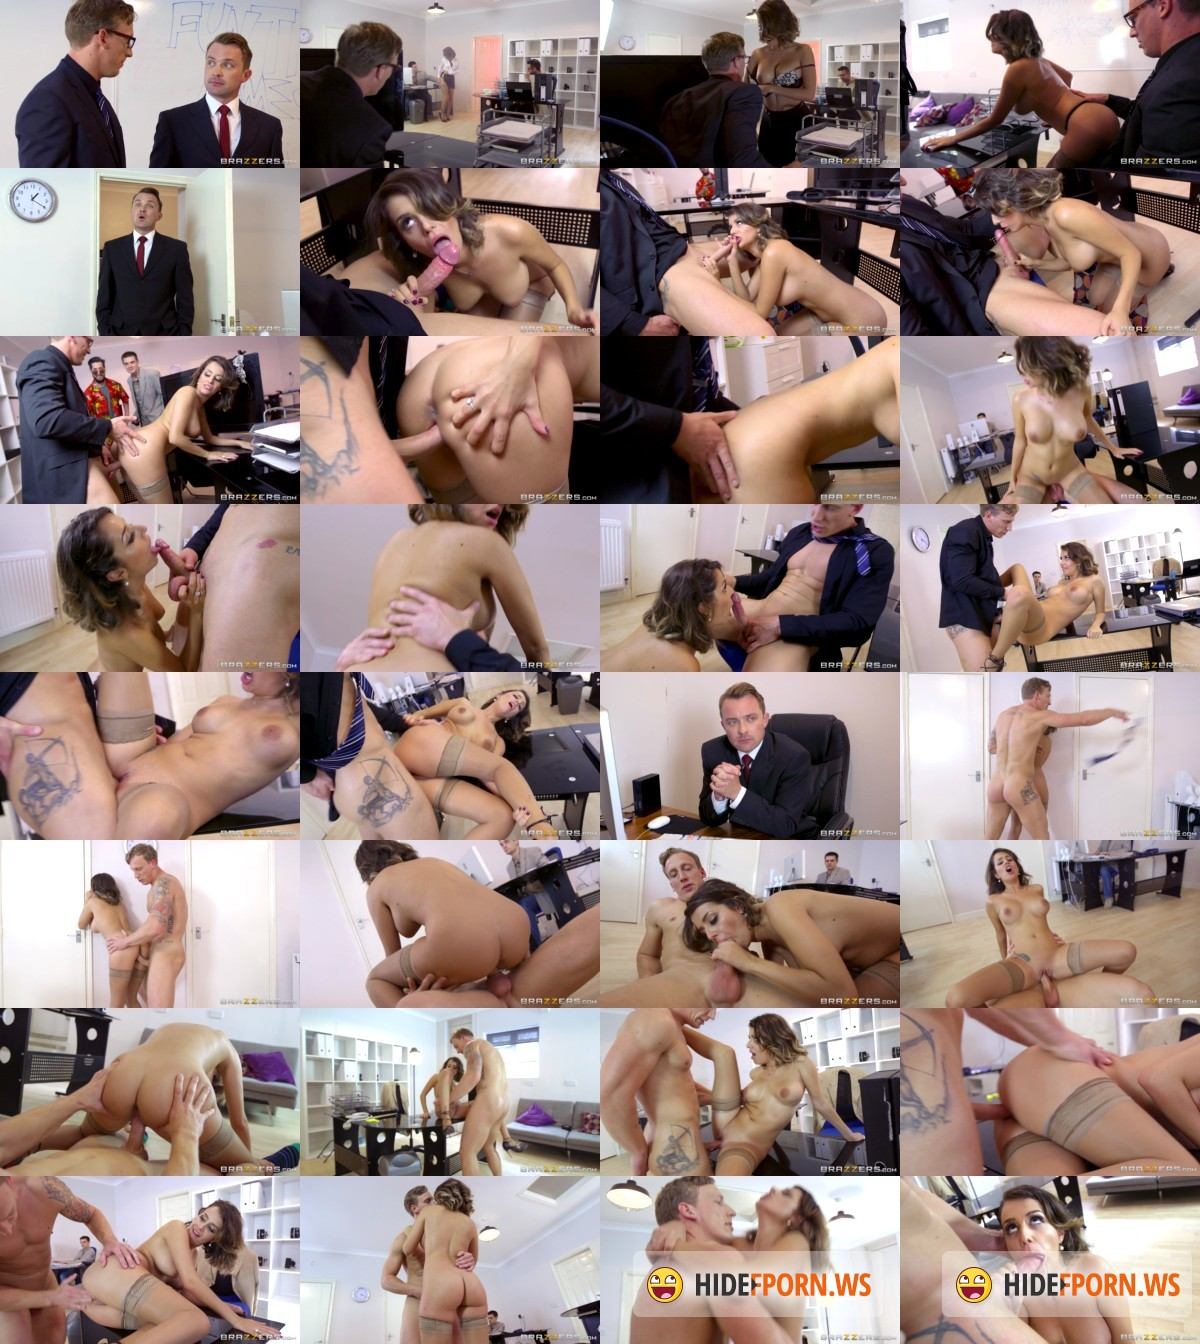 BigTitsAtWork.com/BraZZers.com - Cara Saint-Germain, Luke Hardy - For The Players [HD]